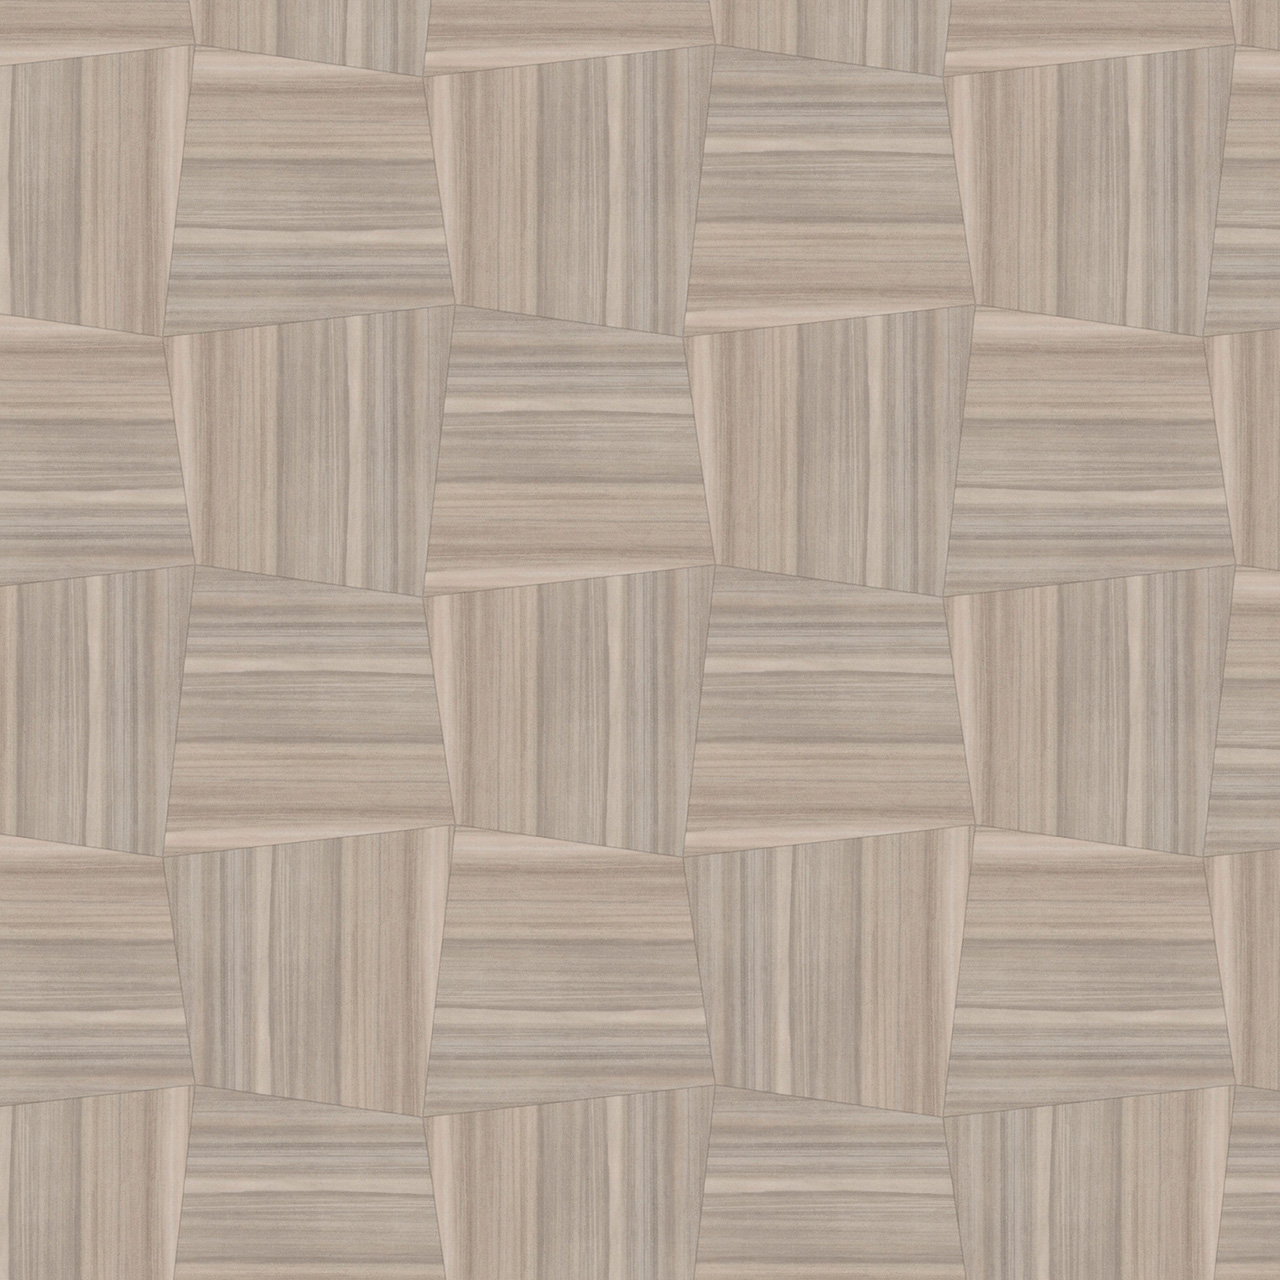 Amtico International: Gradient - DC167